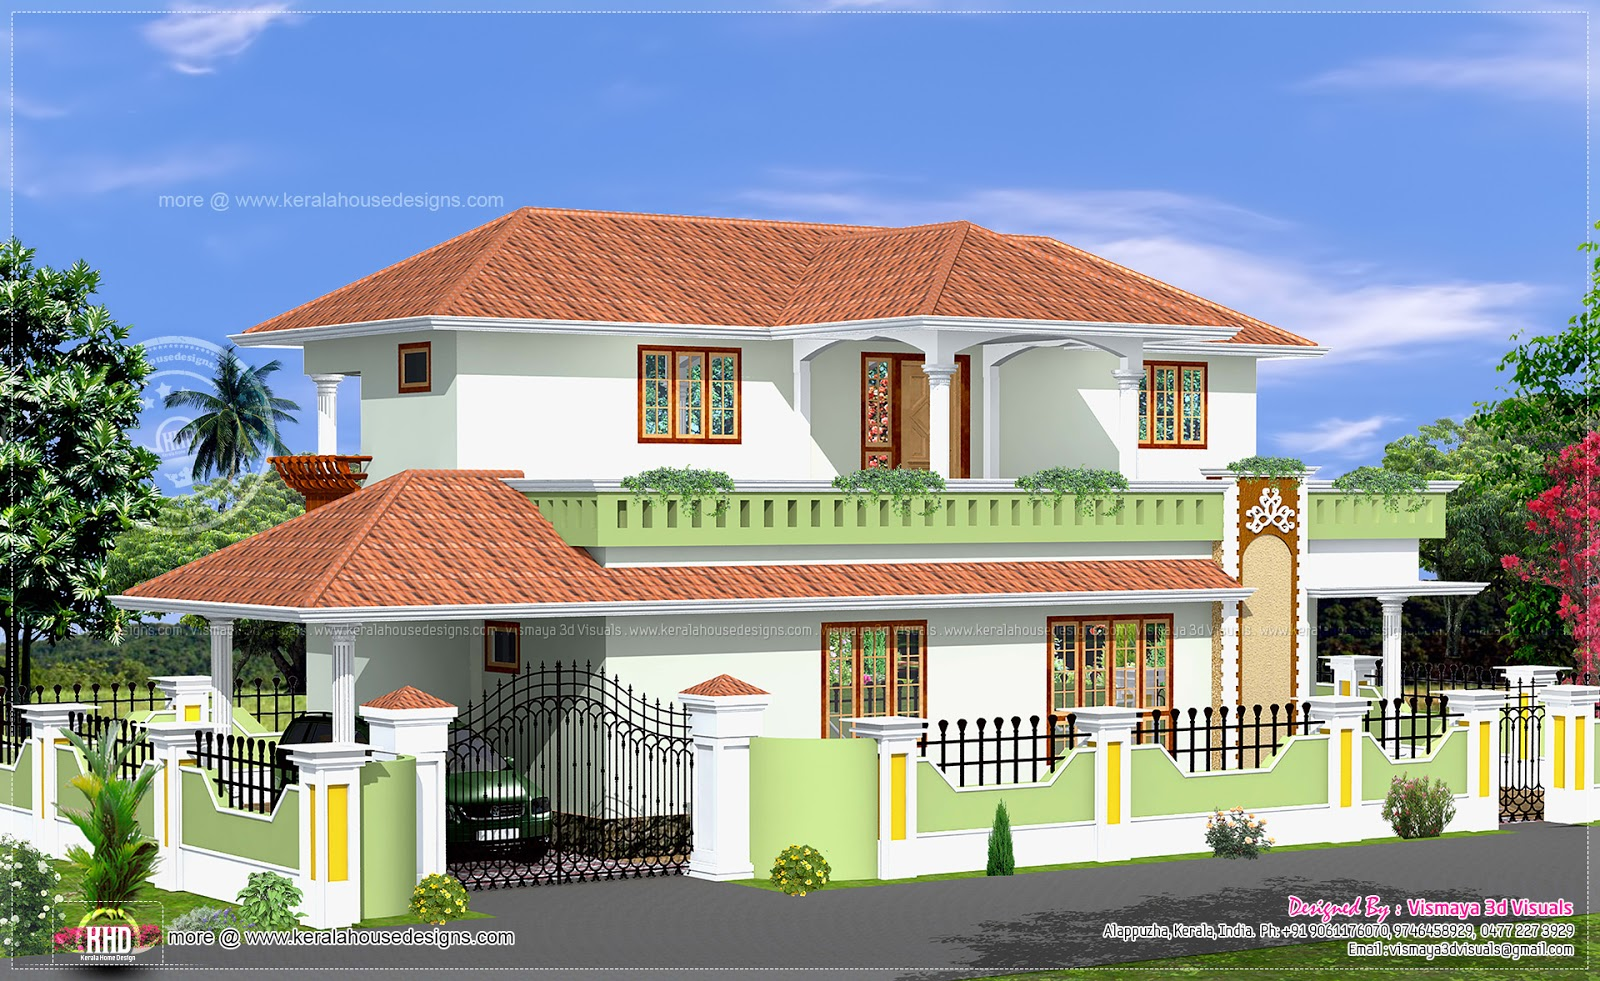 Simple house designs kerala style home design and style for House design styles